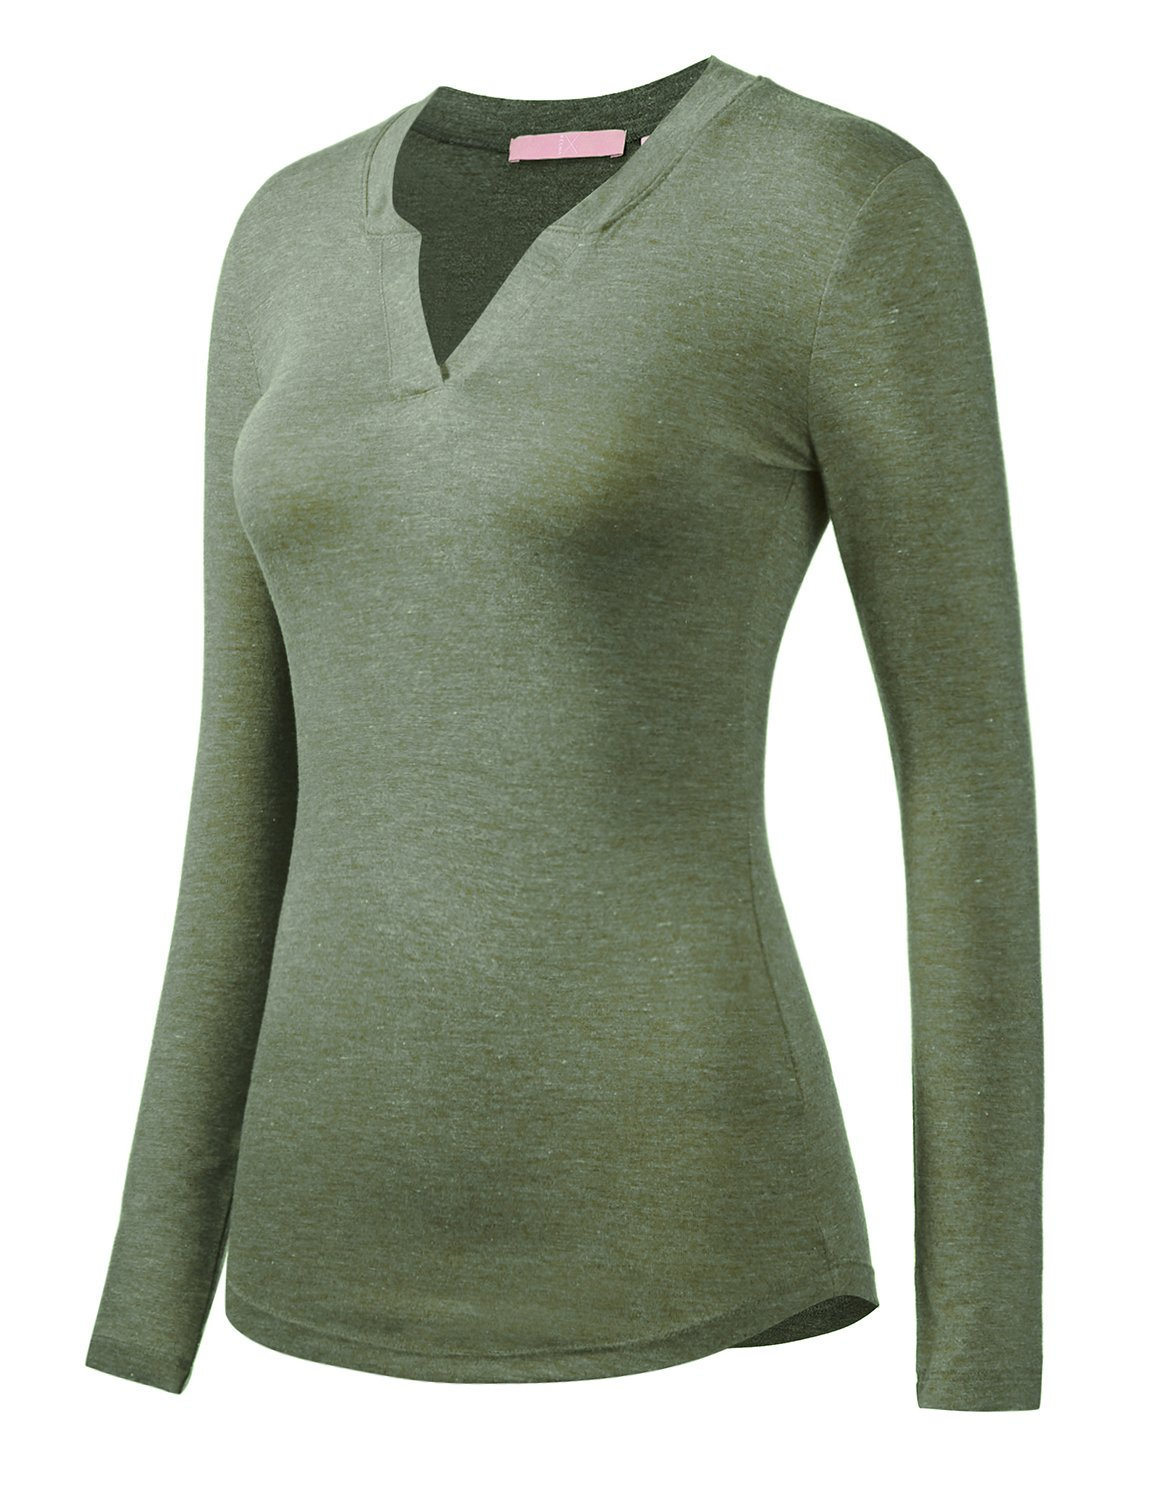 Regna X Women's Small v-Neck wear to Work Office Long Sleeve Green Shirts